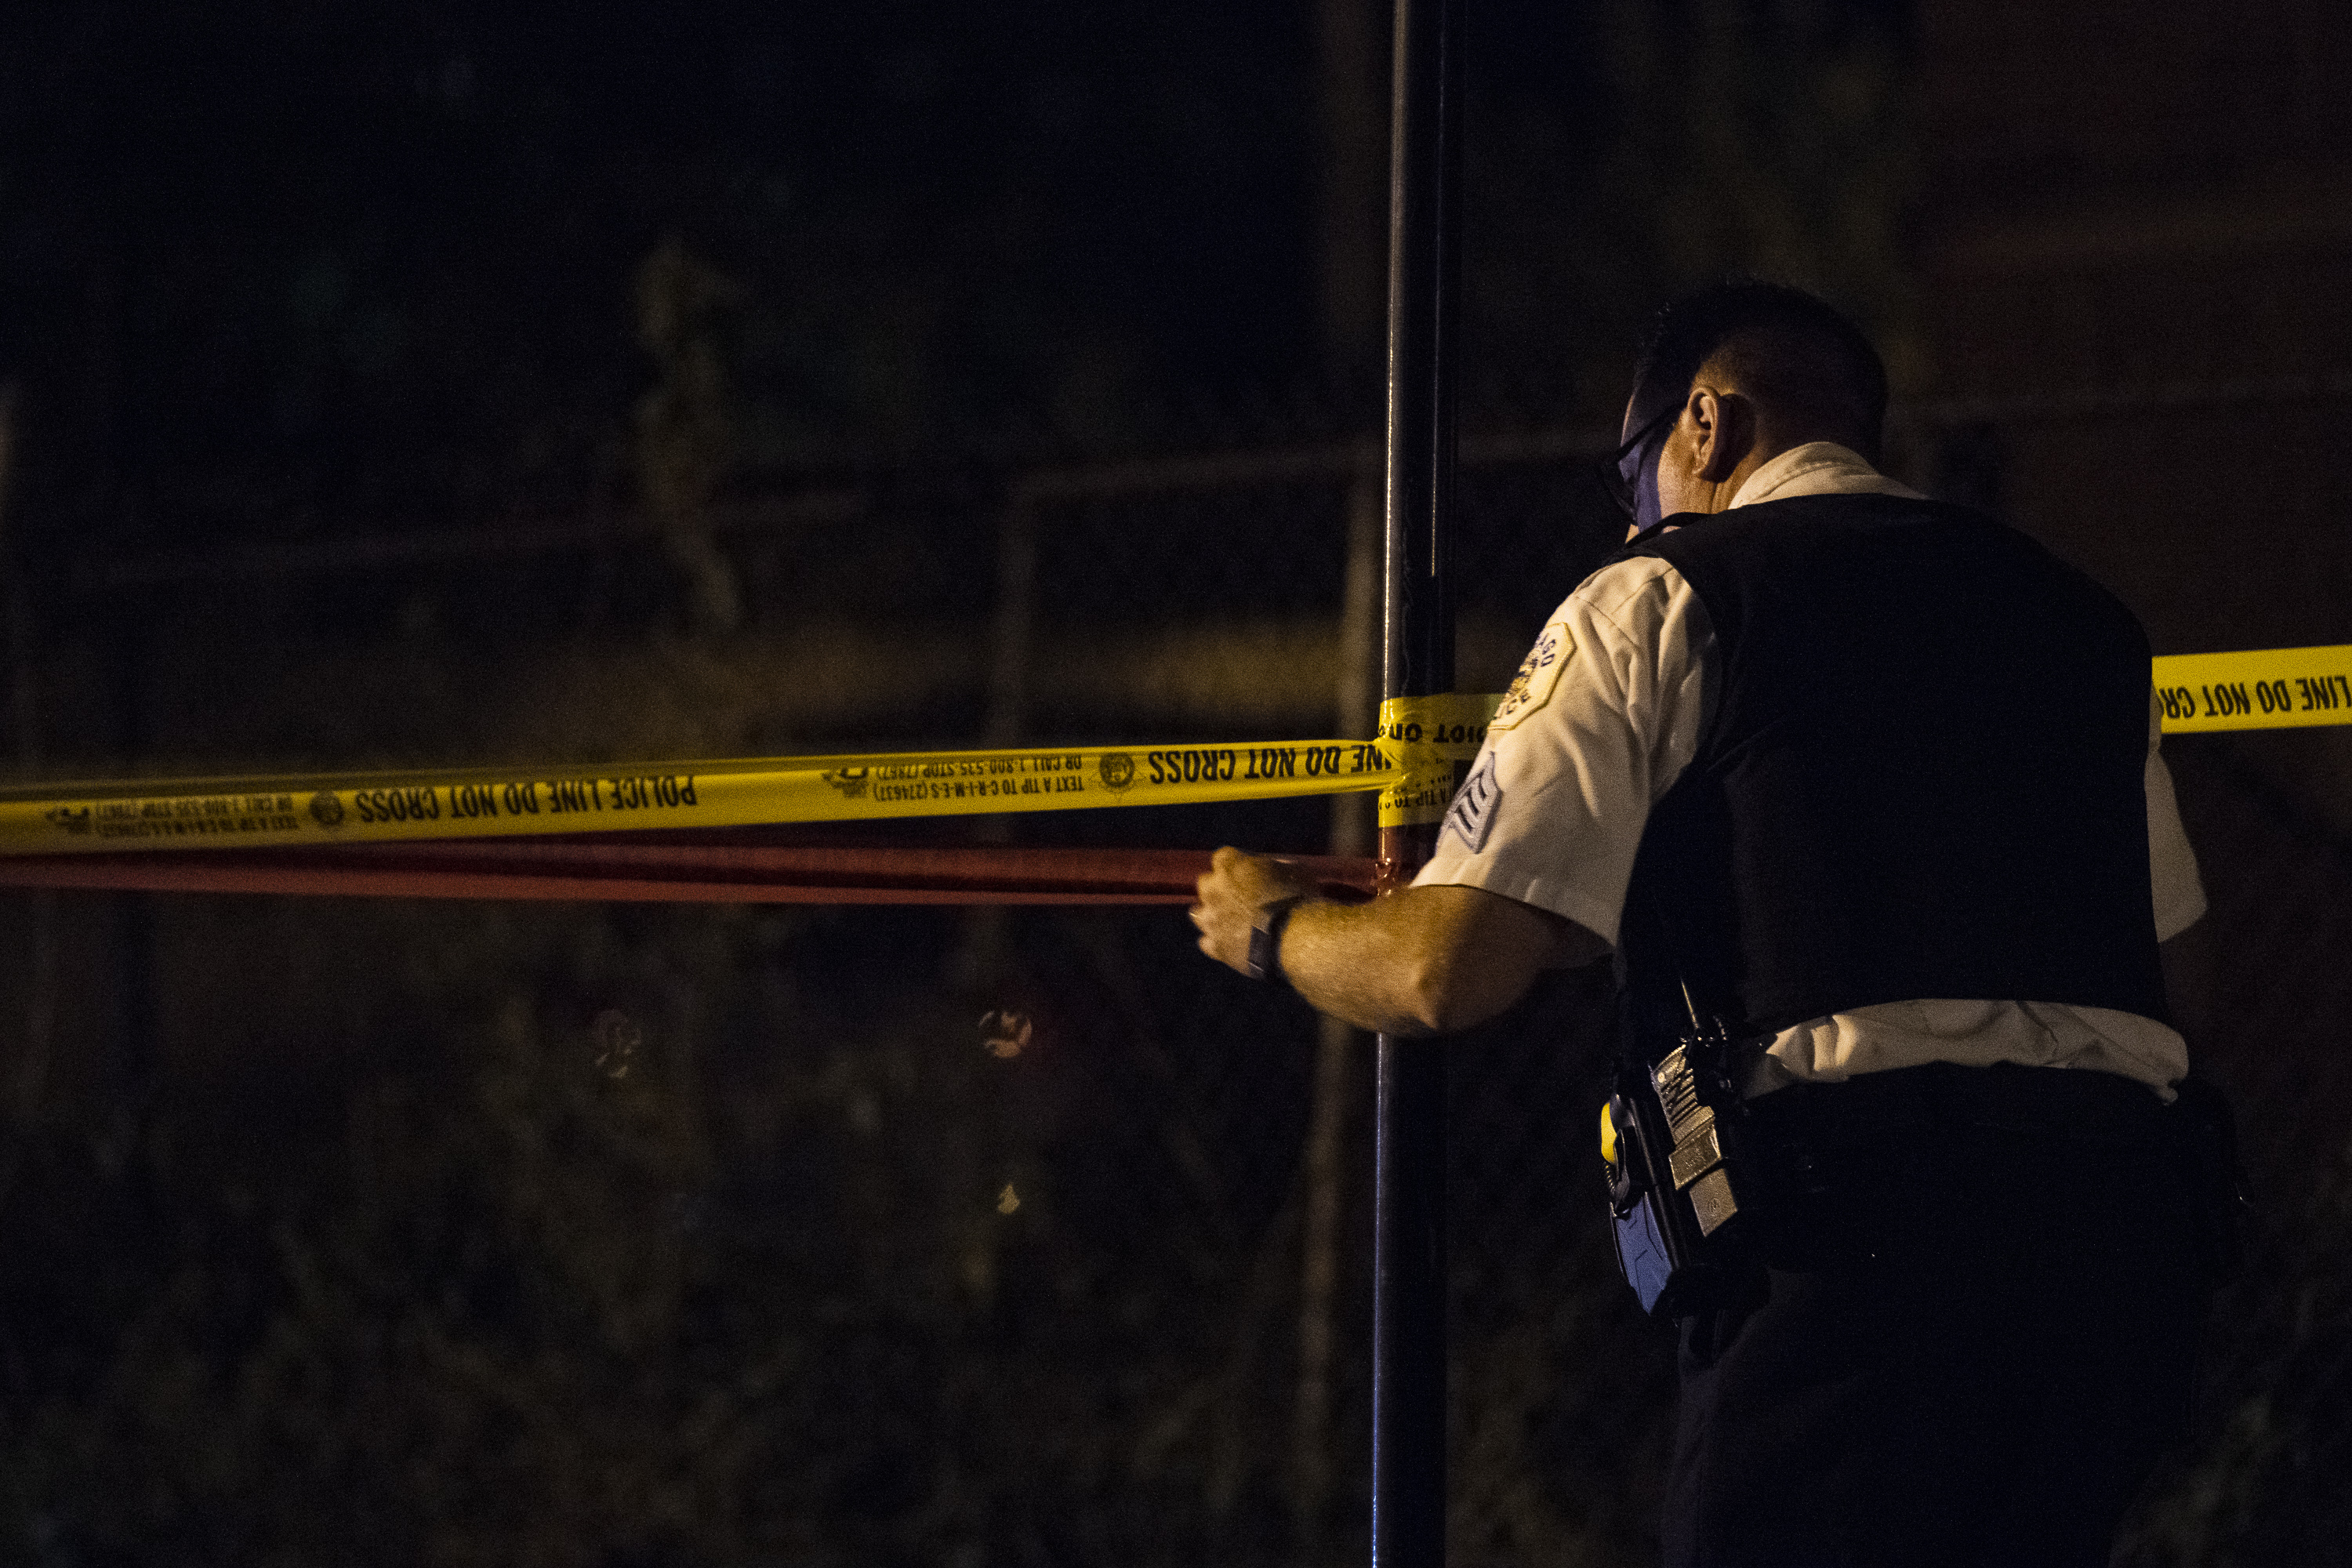 A man was killed in a shooting Nov. 3, 2019, in the 600 block of East 75th Street.